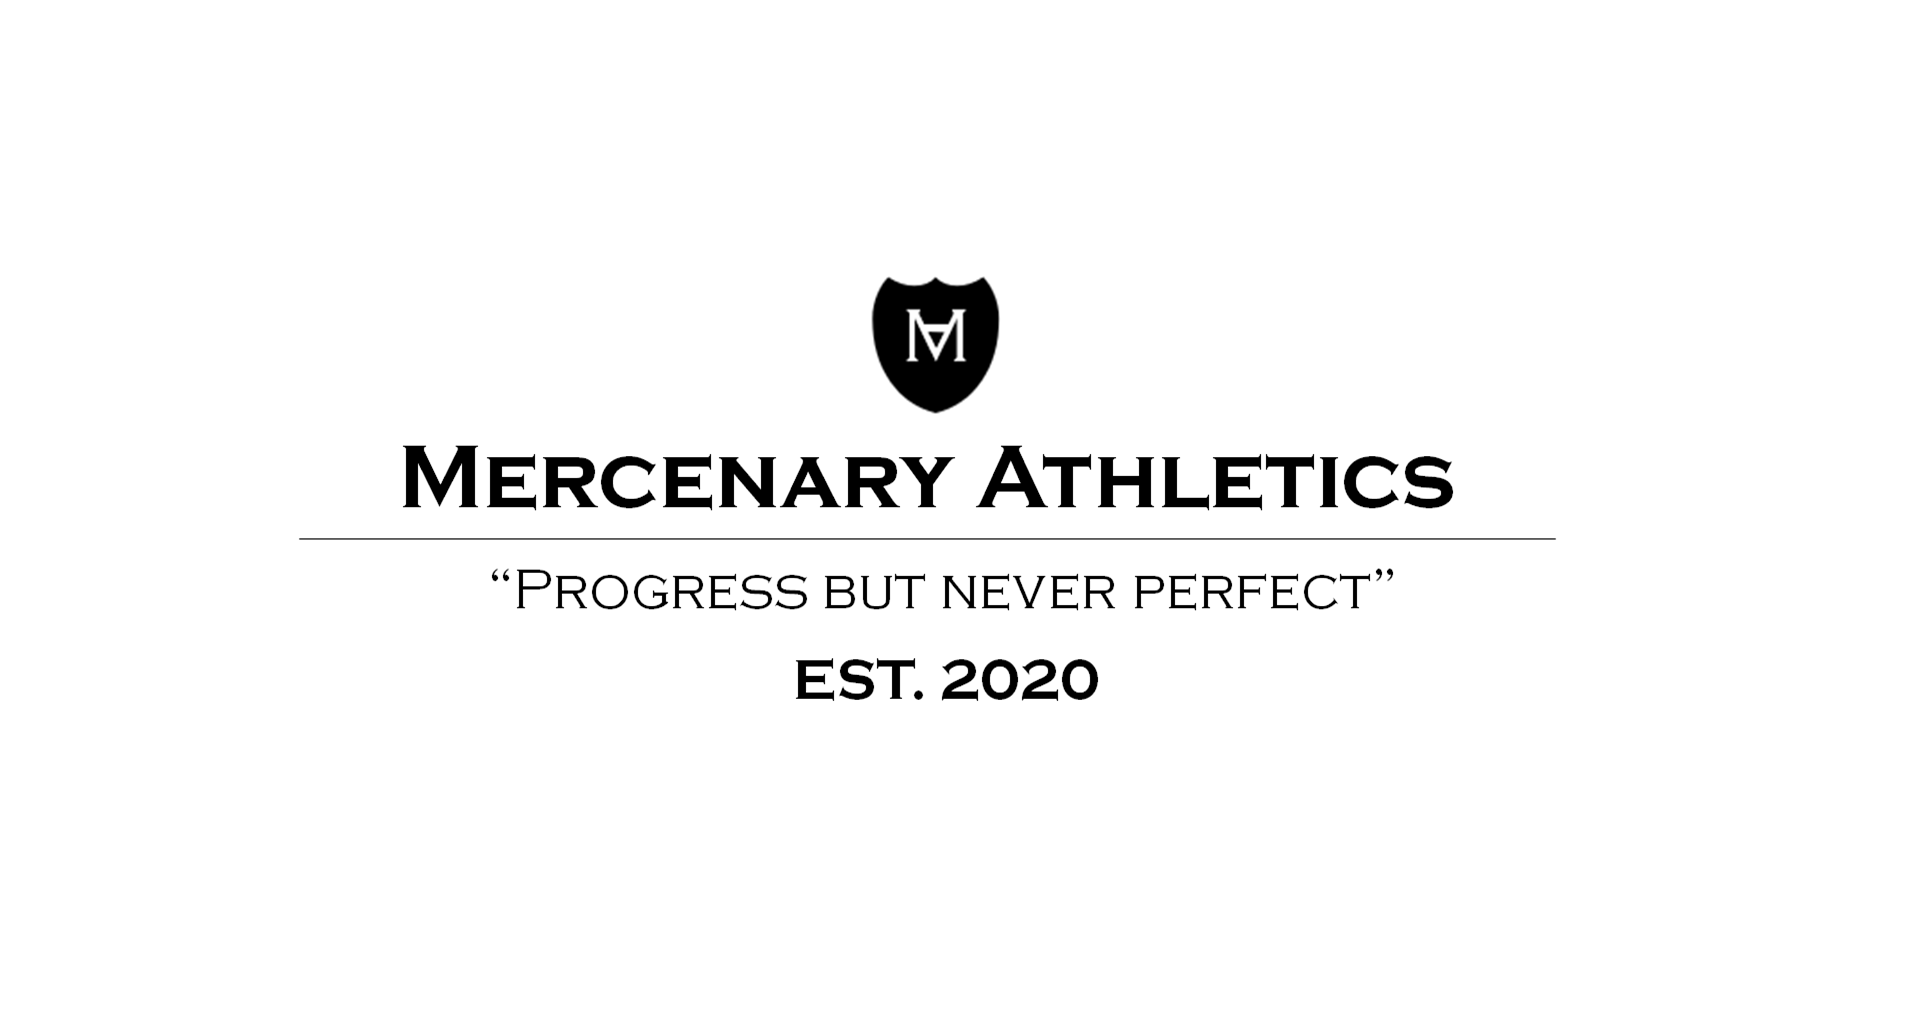 Mercenary Athletics (Official header image) Image